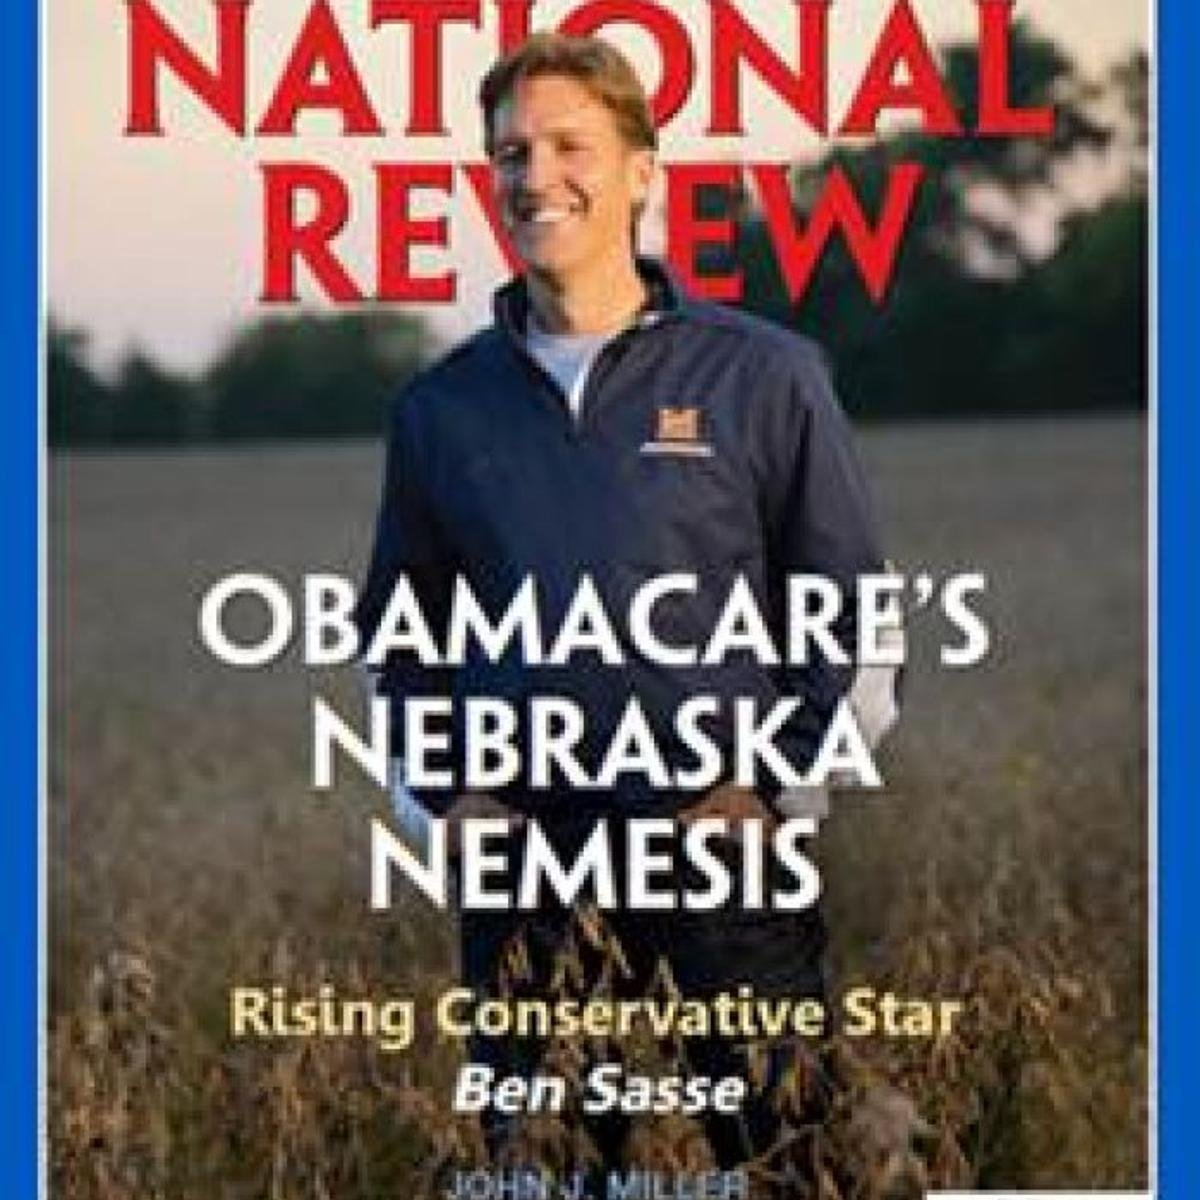 It's been almost 7 years and Sasse still hasn't produced an Obama Care replacement plan.  #NeSenpic.twitter.com/3WJM6vhmp4